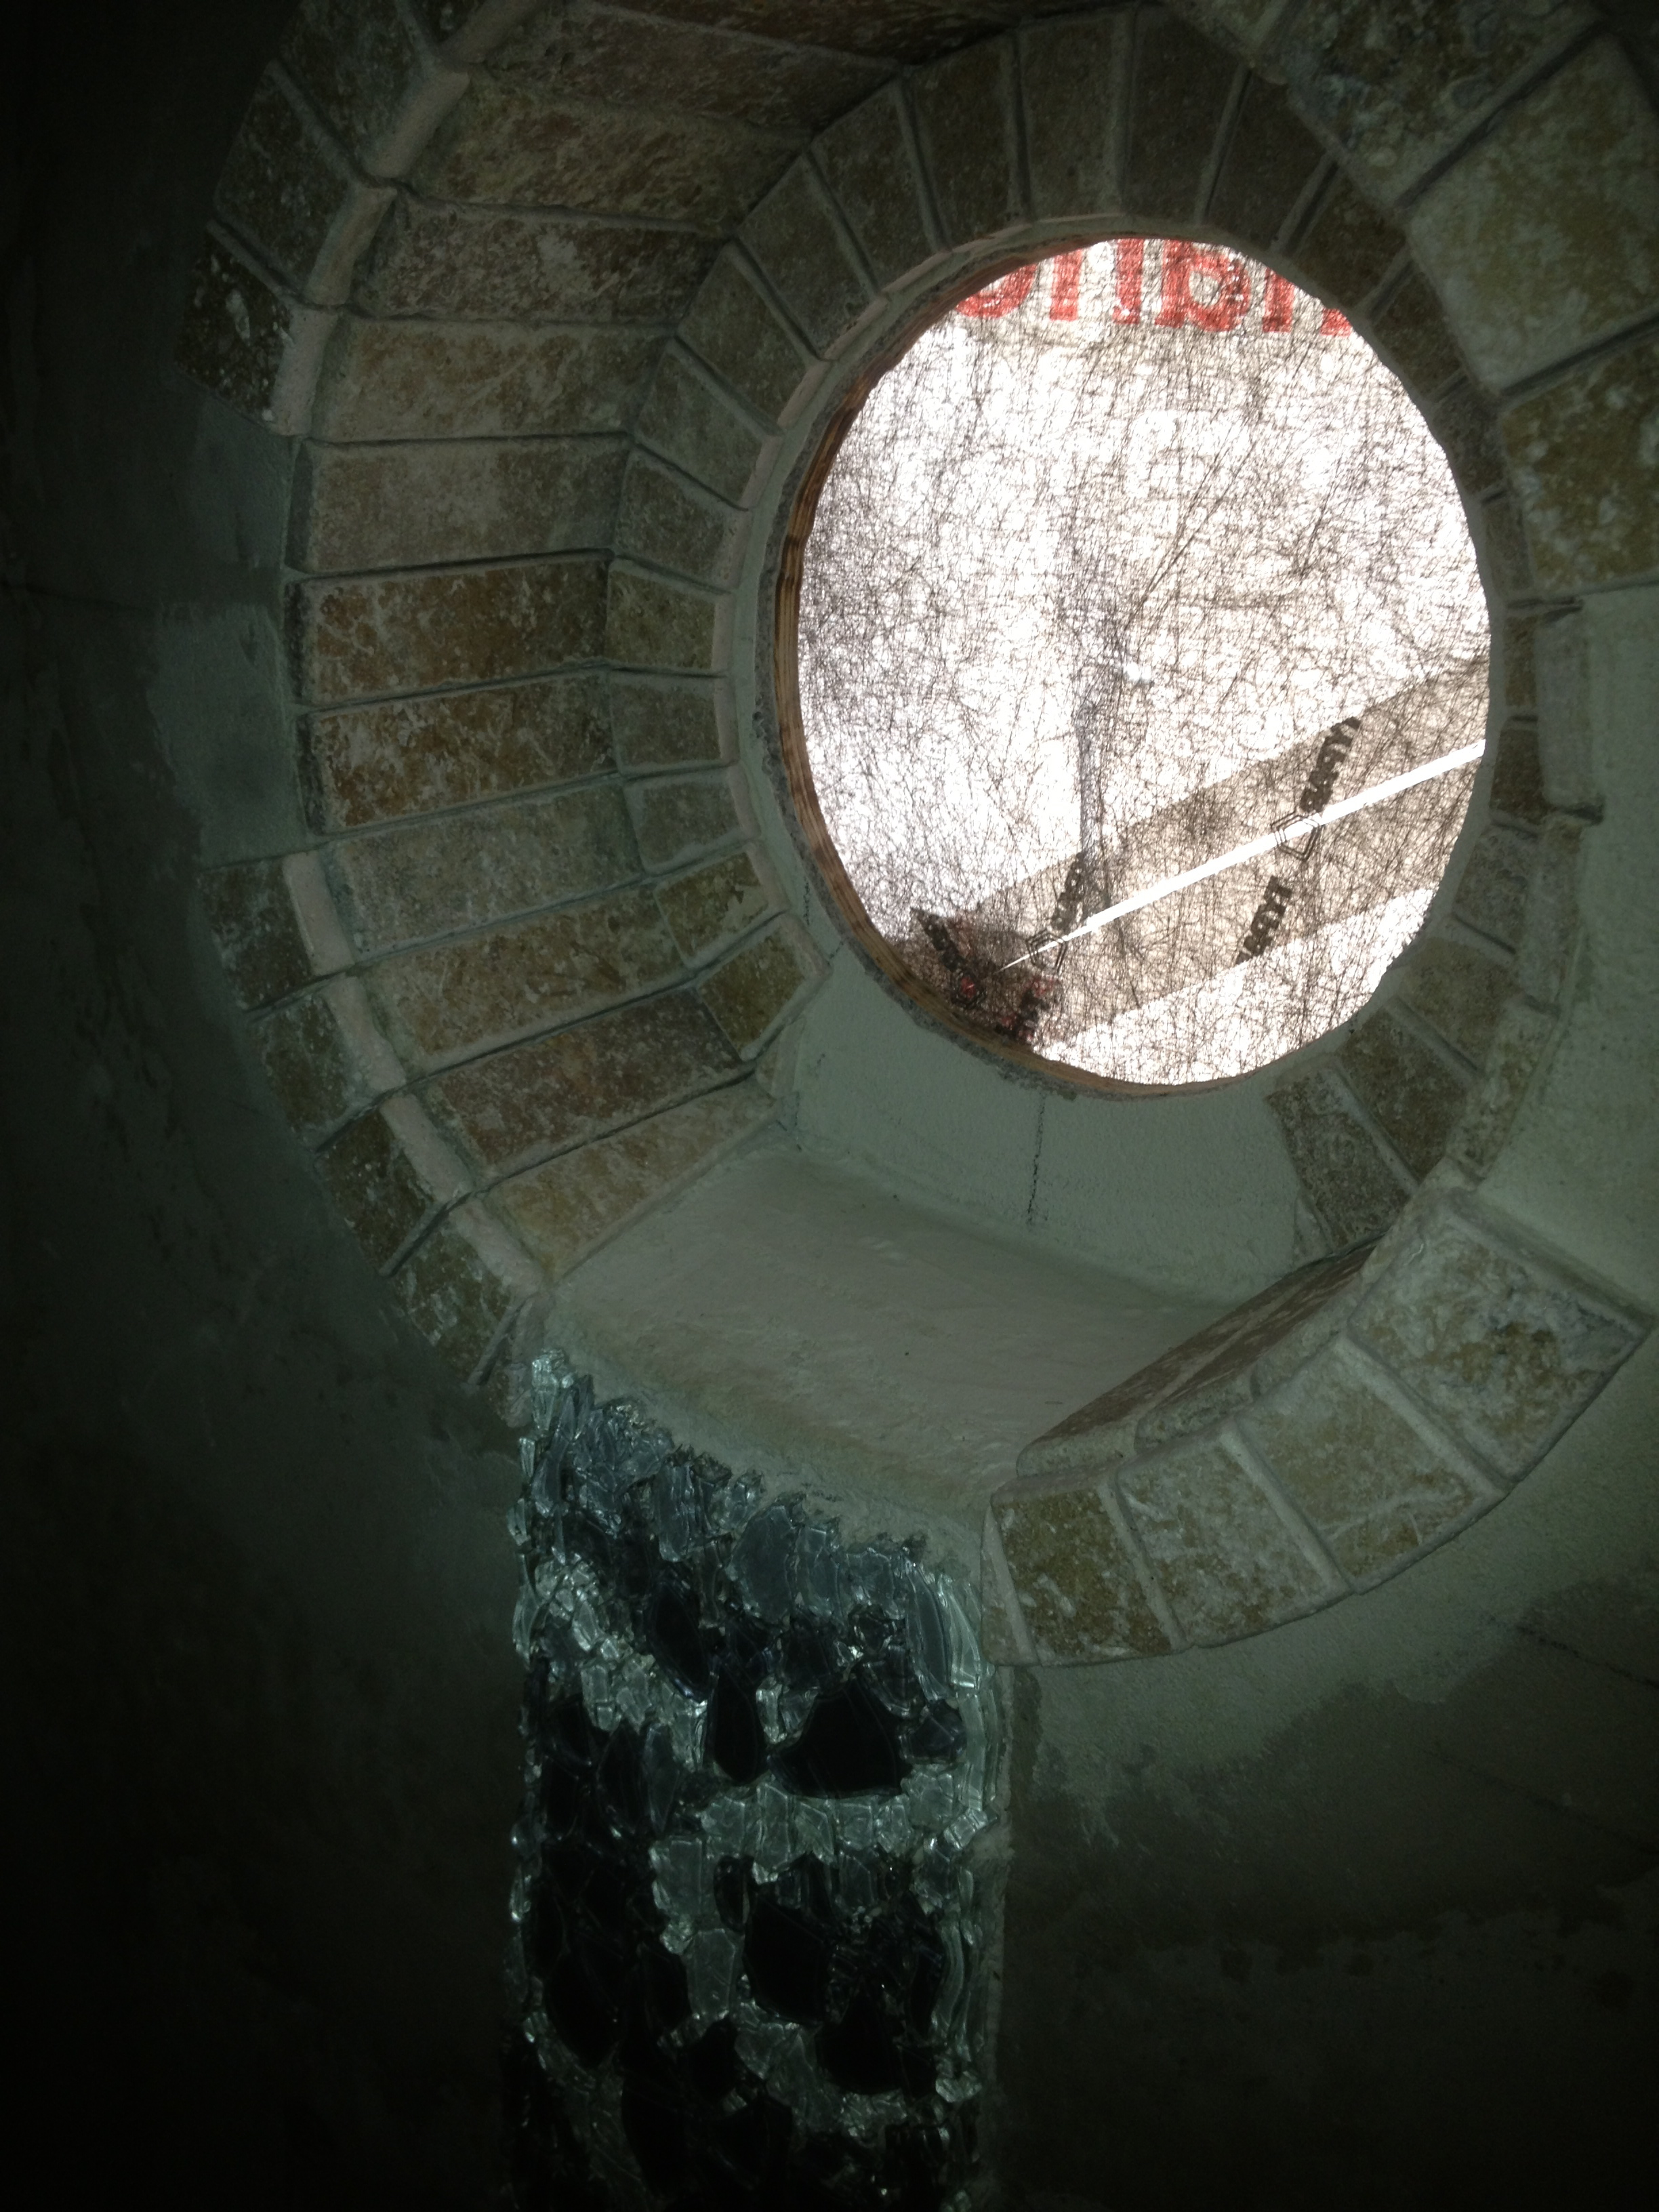 Porthole with tile